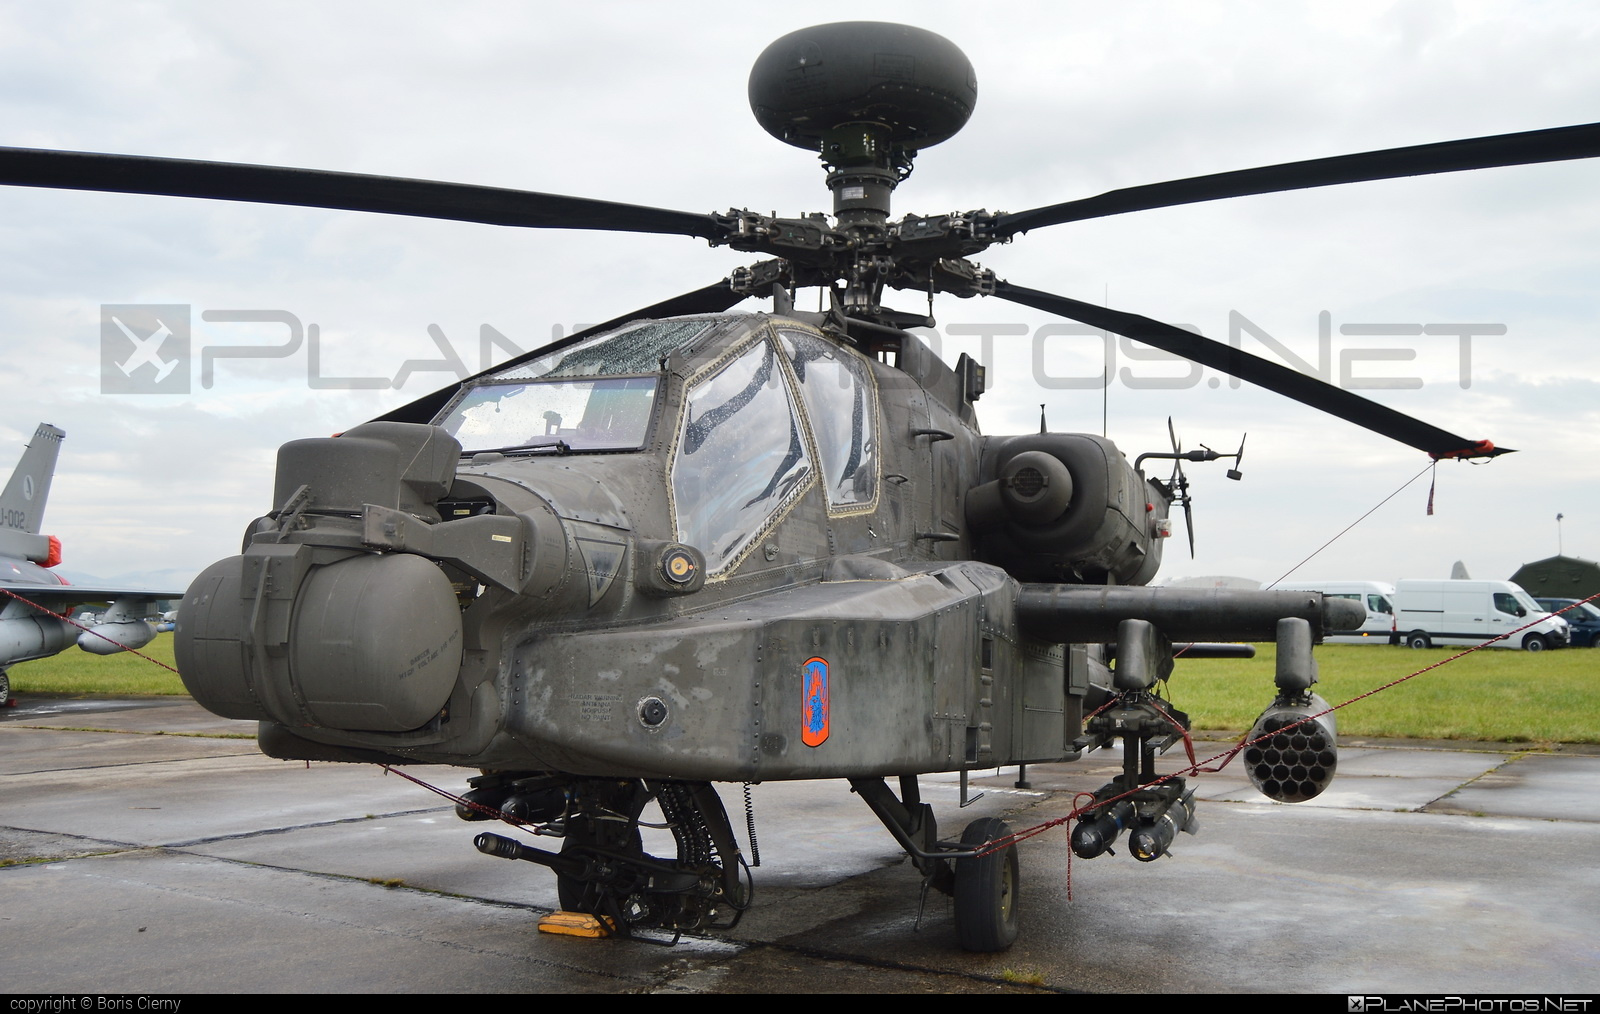 Boeing AH-64D Apache Longbow - 04-05467 operated by US Army #boeing #natodays #natodays2016 #usarmy